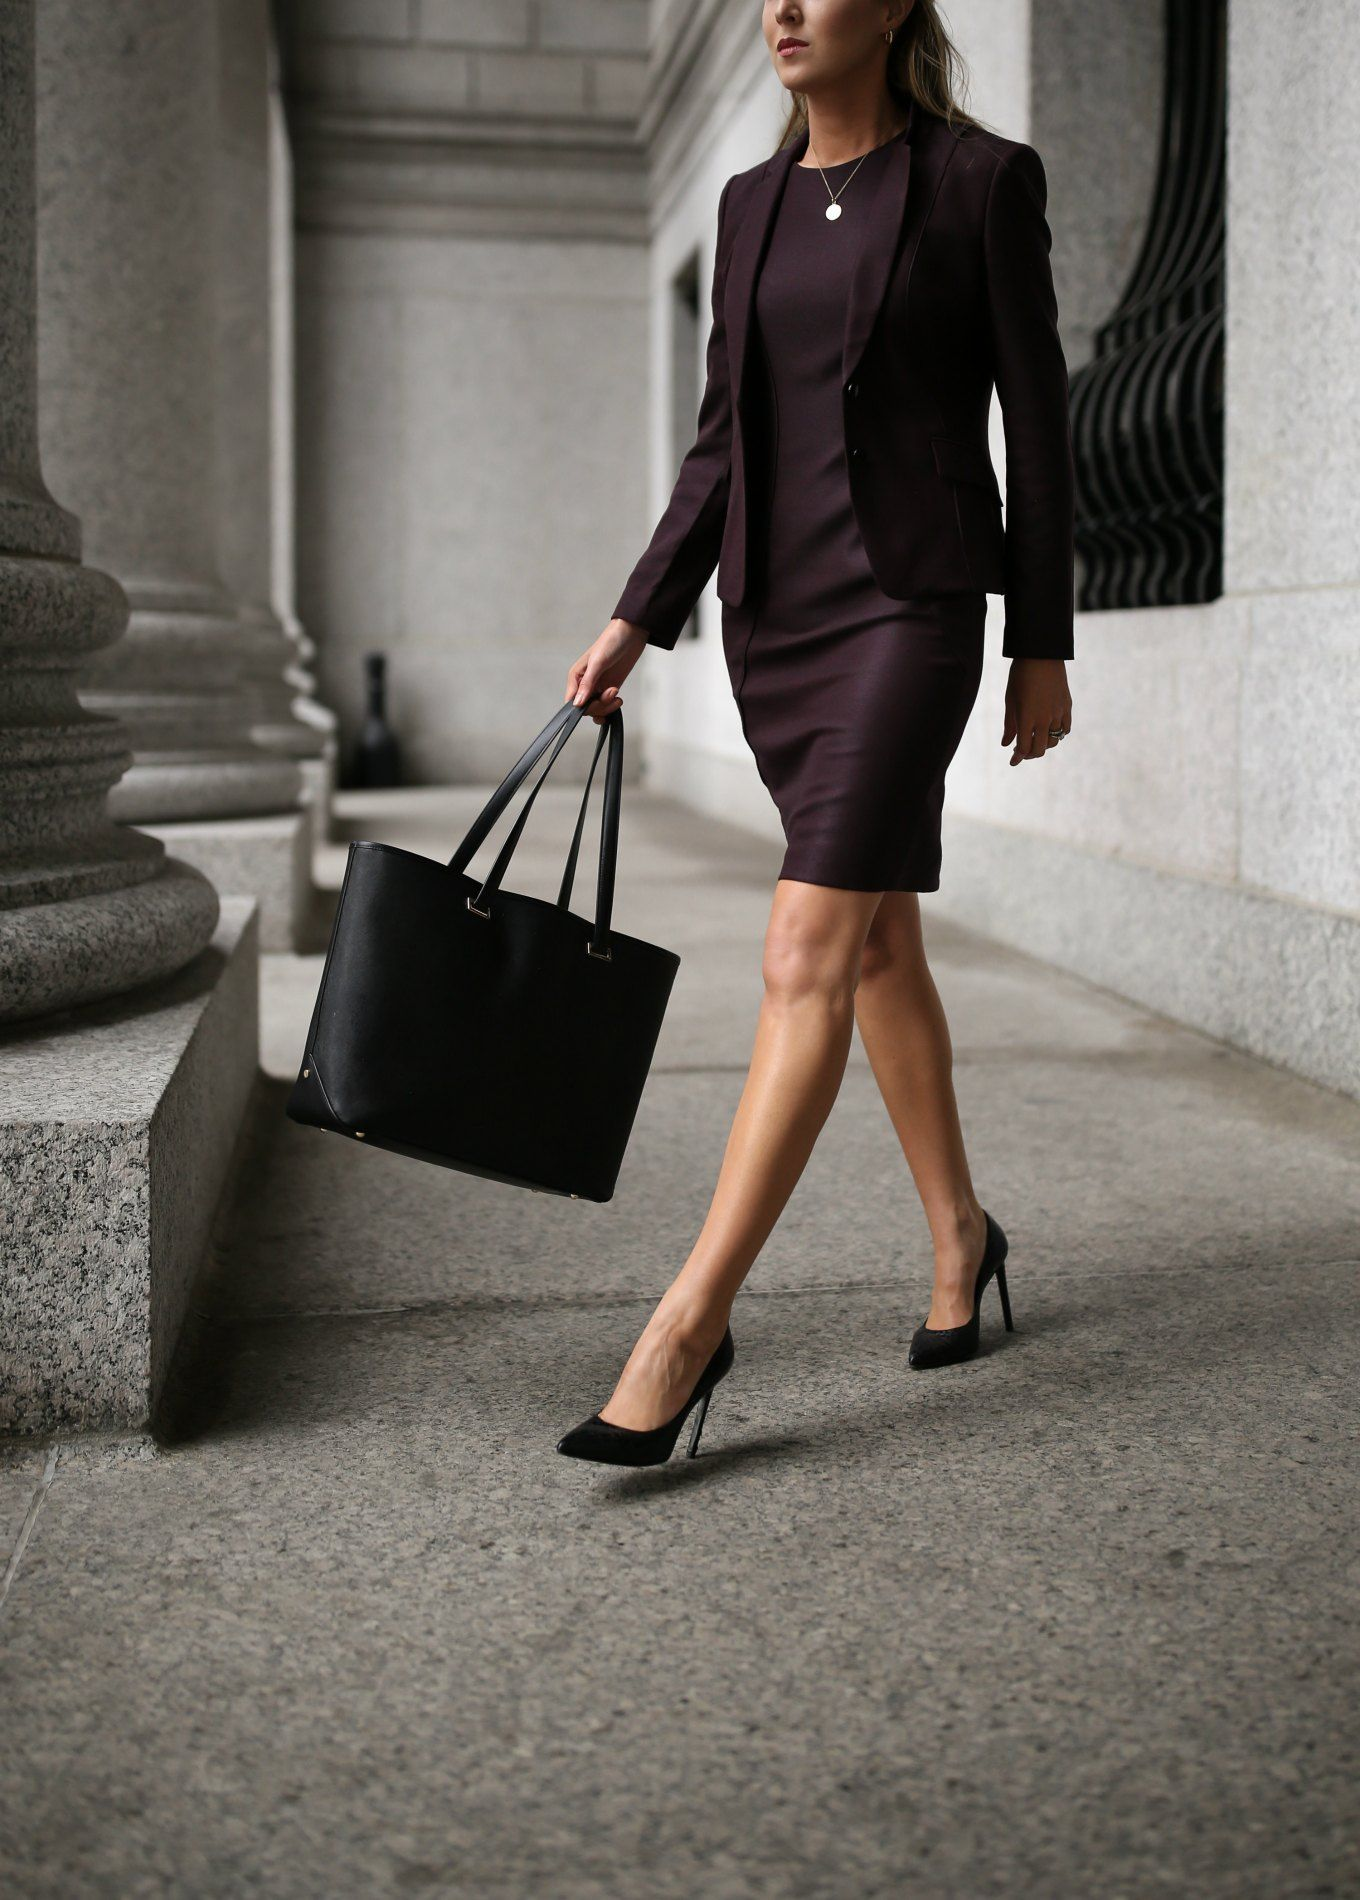 36a202b249 workwear wardrobe essentials featuring a burgundy red hugo boss suit dress  and suit jacket with black stiletto jimmy choo pumps a black tote bag and  gold ...